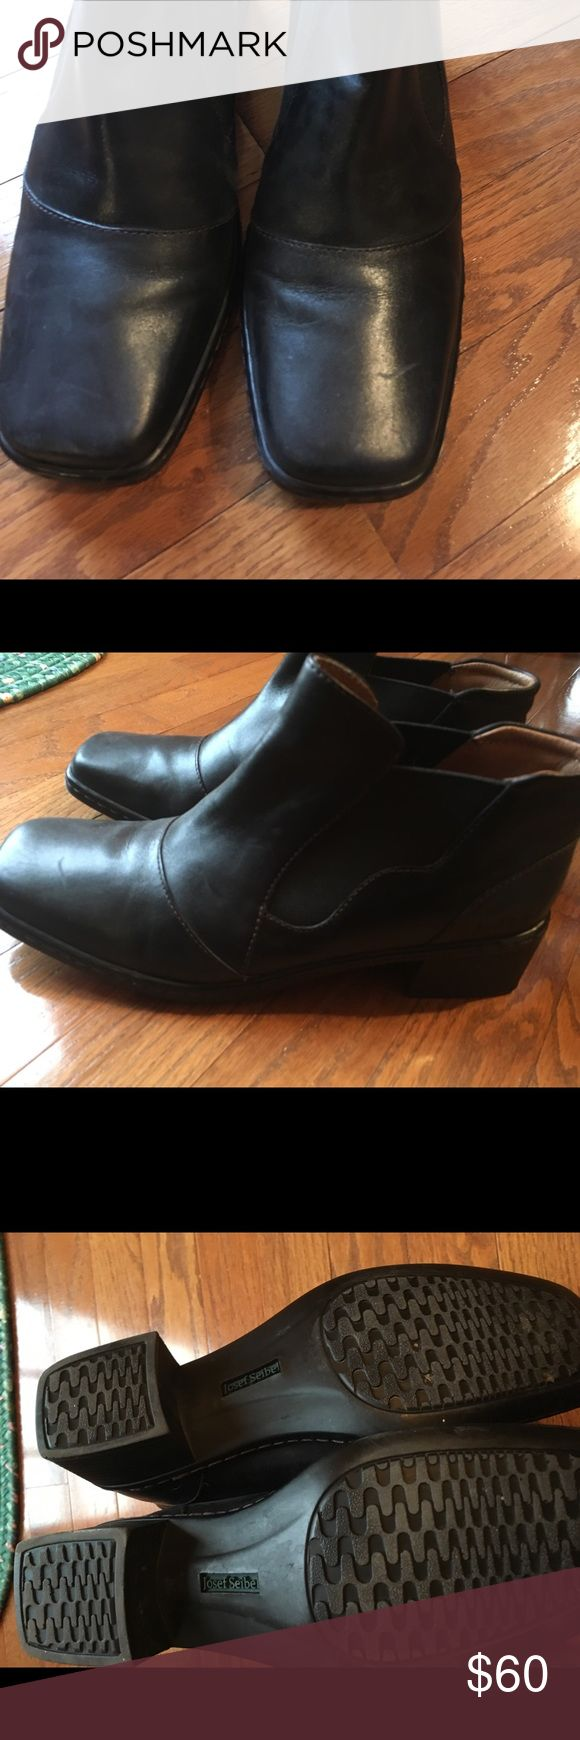 Josef Seibel ankle boots. Excellent condition Josef Seibel ankle boots. Excellent condition, size 40 which is 9-9.5 euro. Josef Seibel Shoes Ankle Boots & Booties